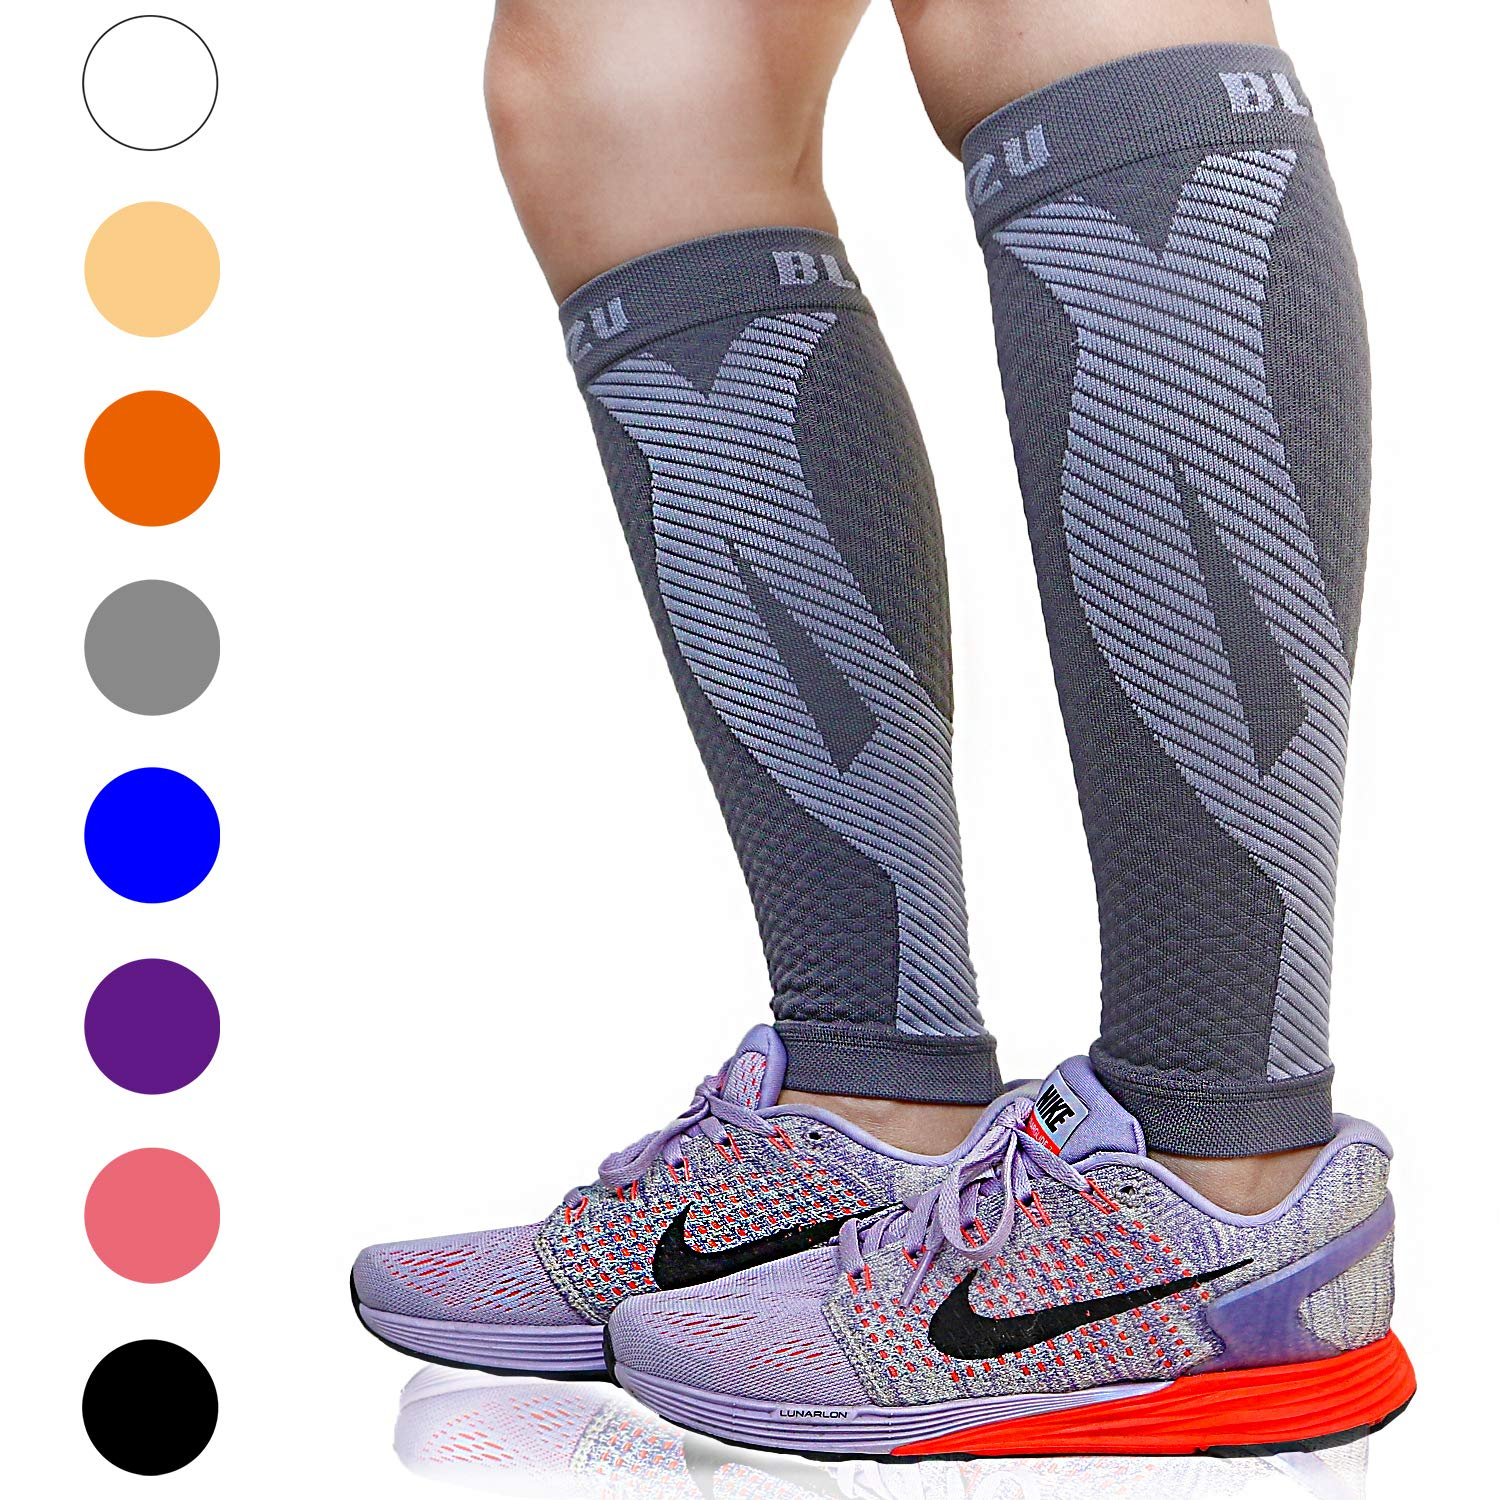 BLITZU Calf Compression Sleeve Leg Performance Support for Shin Splint & Calf Pain Relief. Men Women Runners Guards Sleeves for Running. Improves Circulation and Recovery (Gray, Small/Medium) by BLITZU